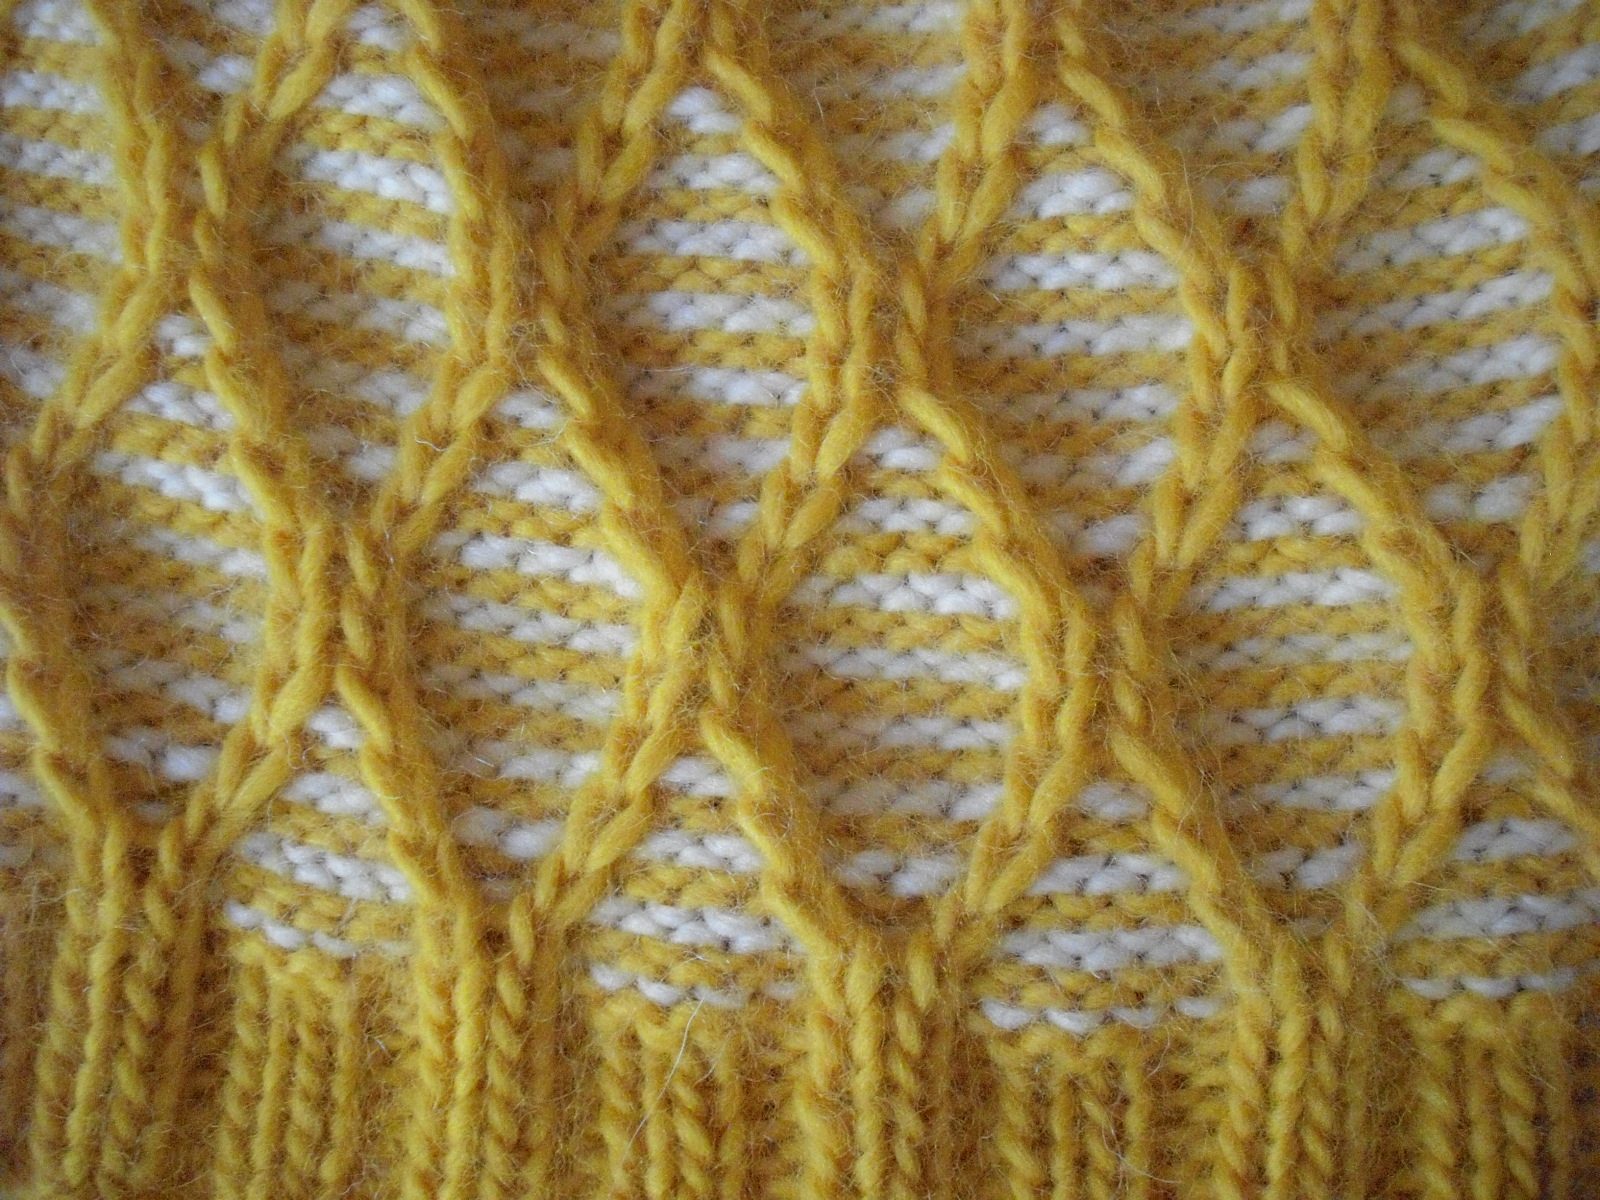 Knitting Cool Stitches : Labor of Love: Finished! My First Sweater Design